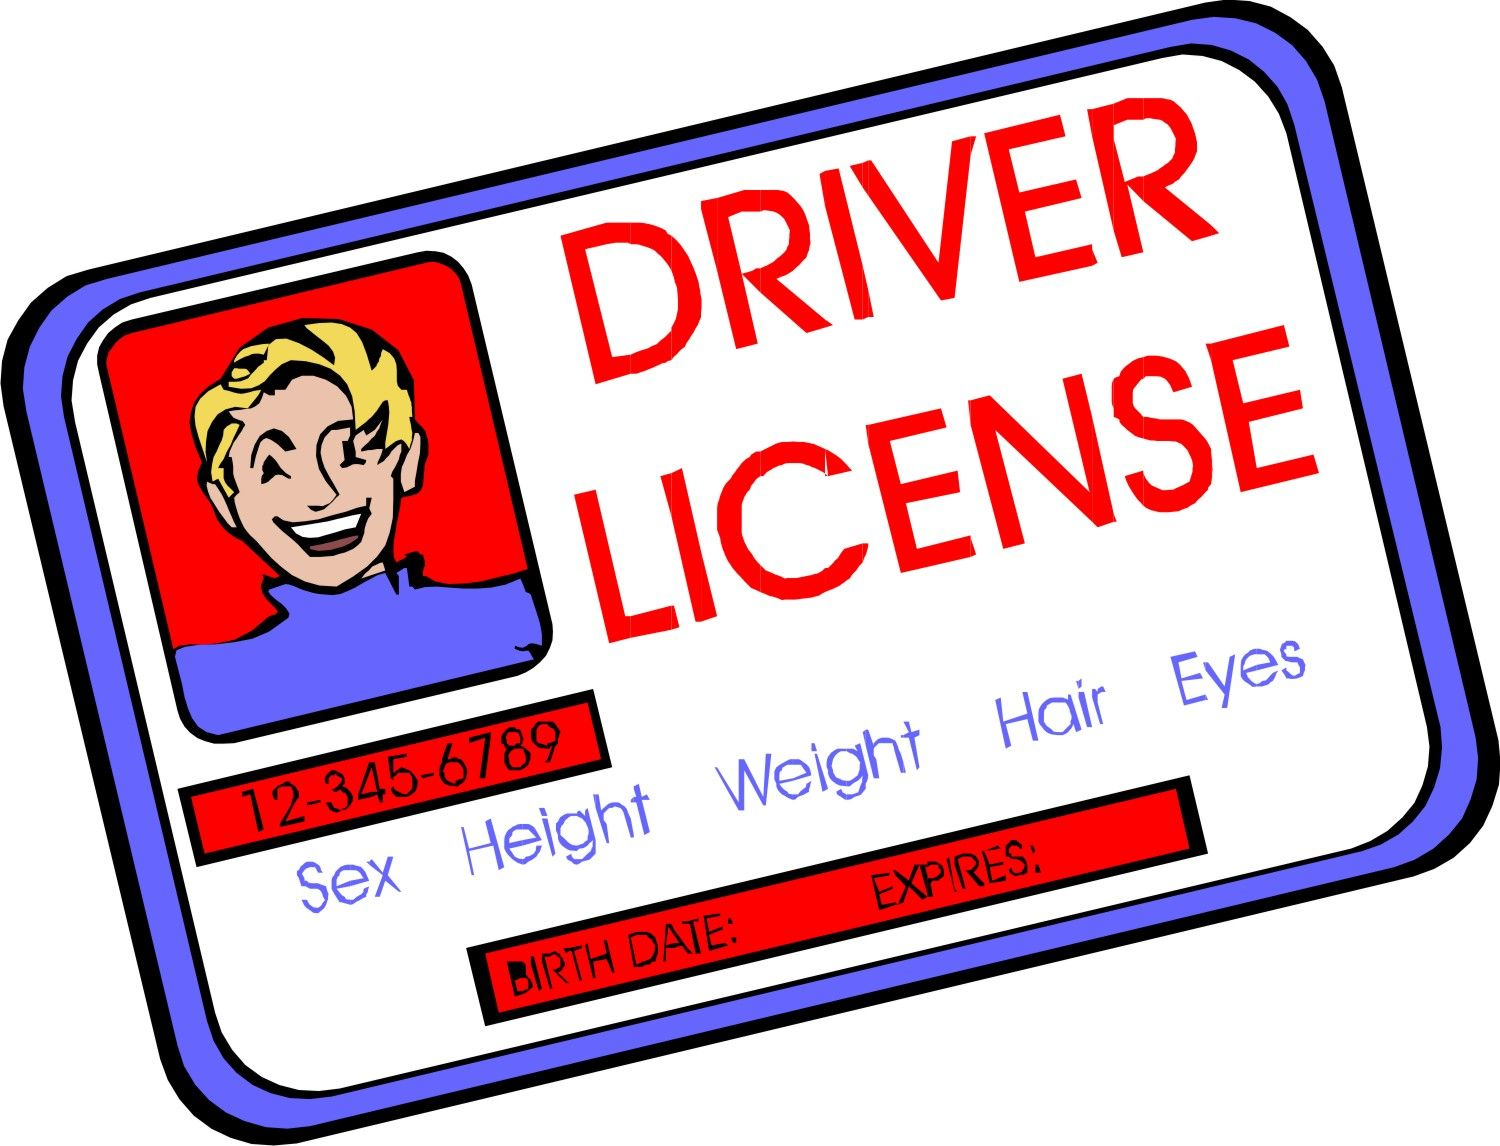 drivers license clipart driver licence